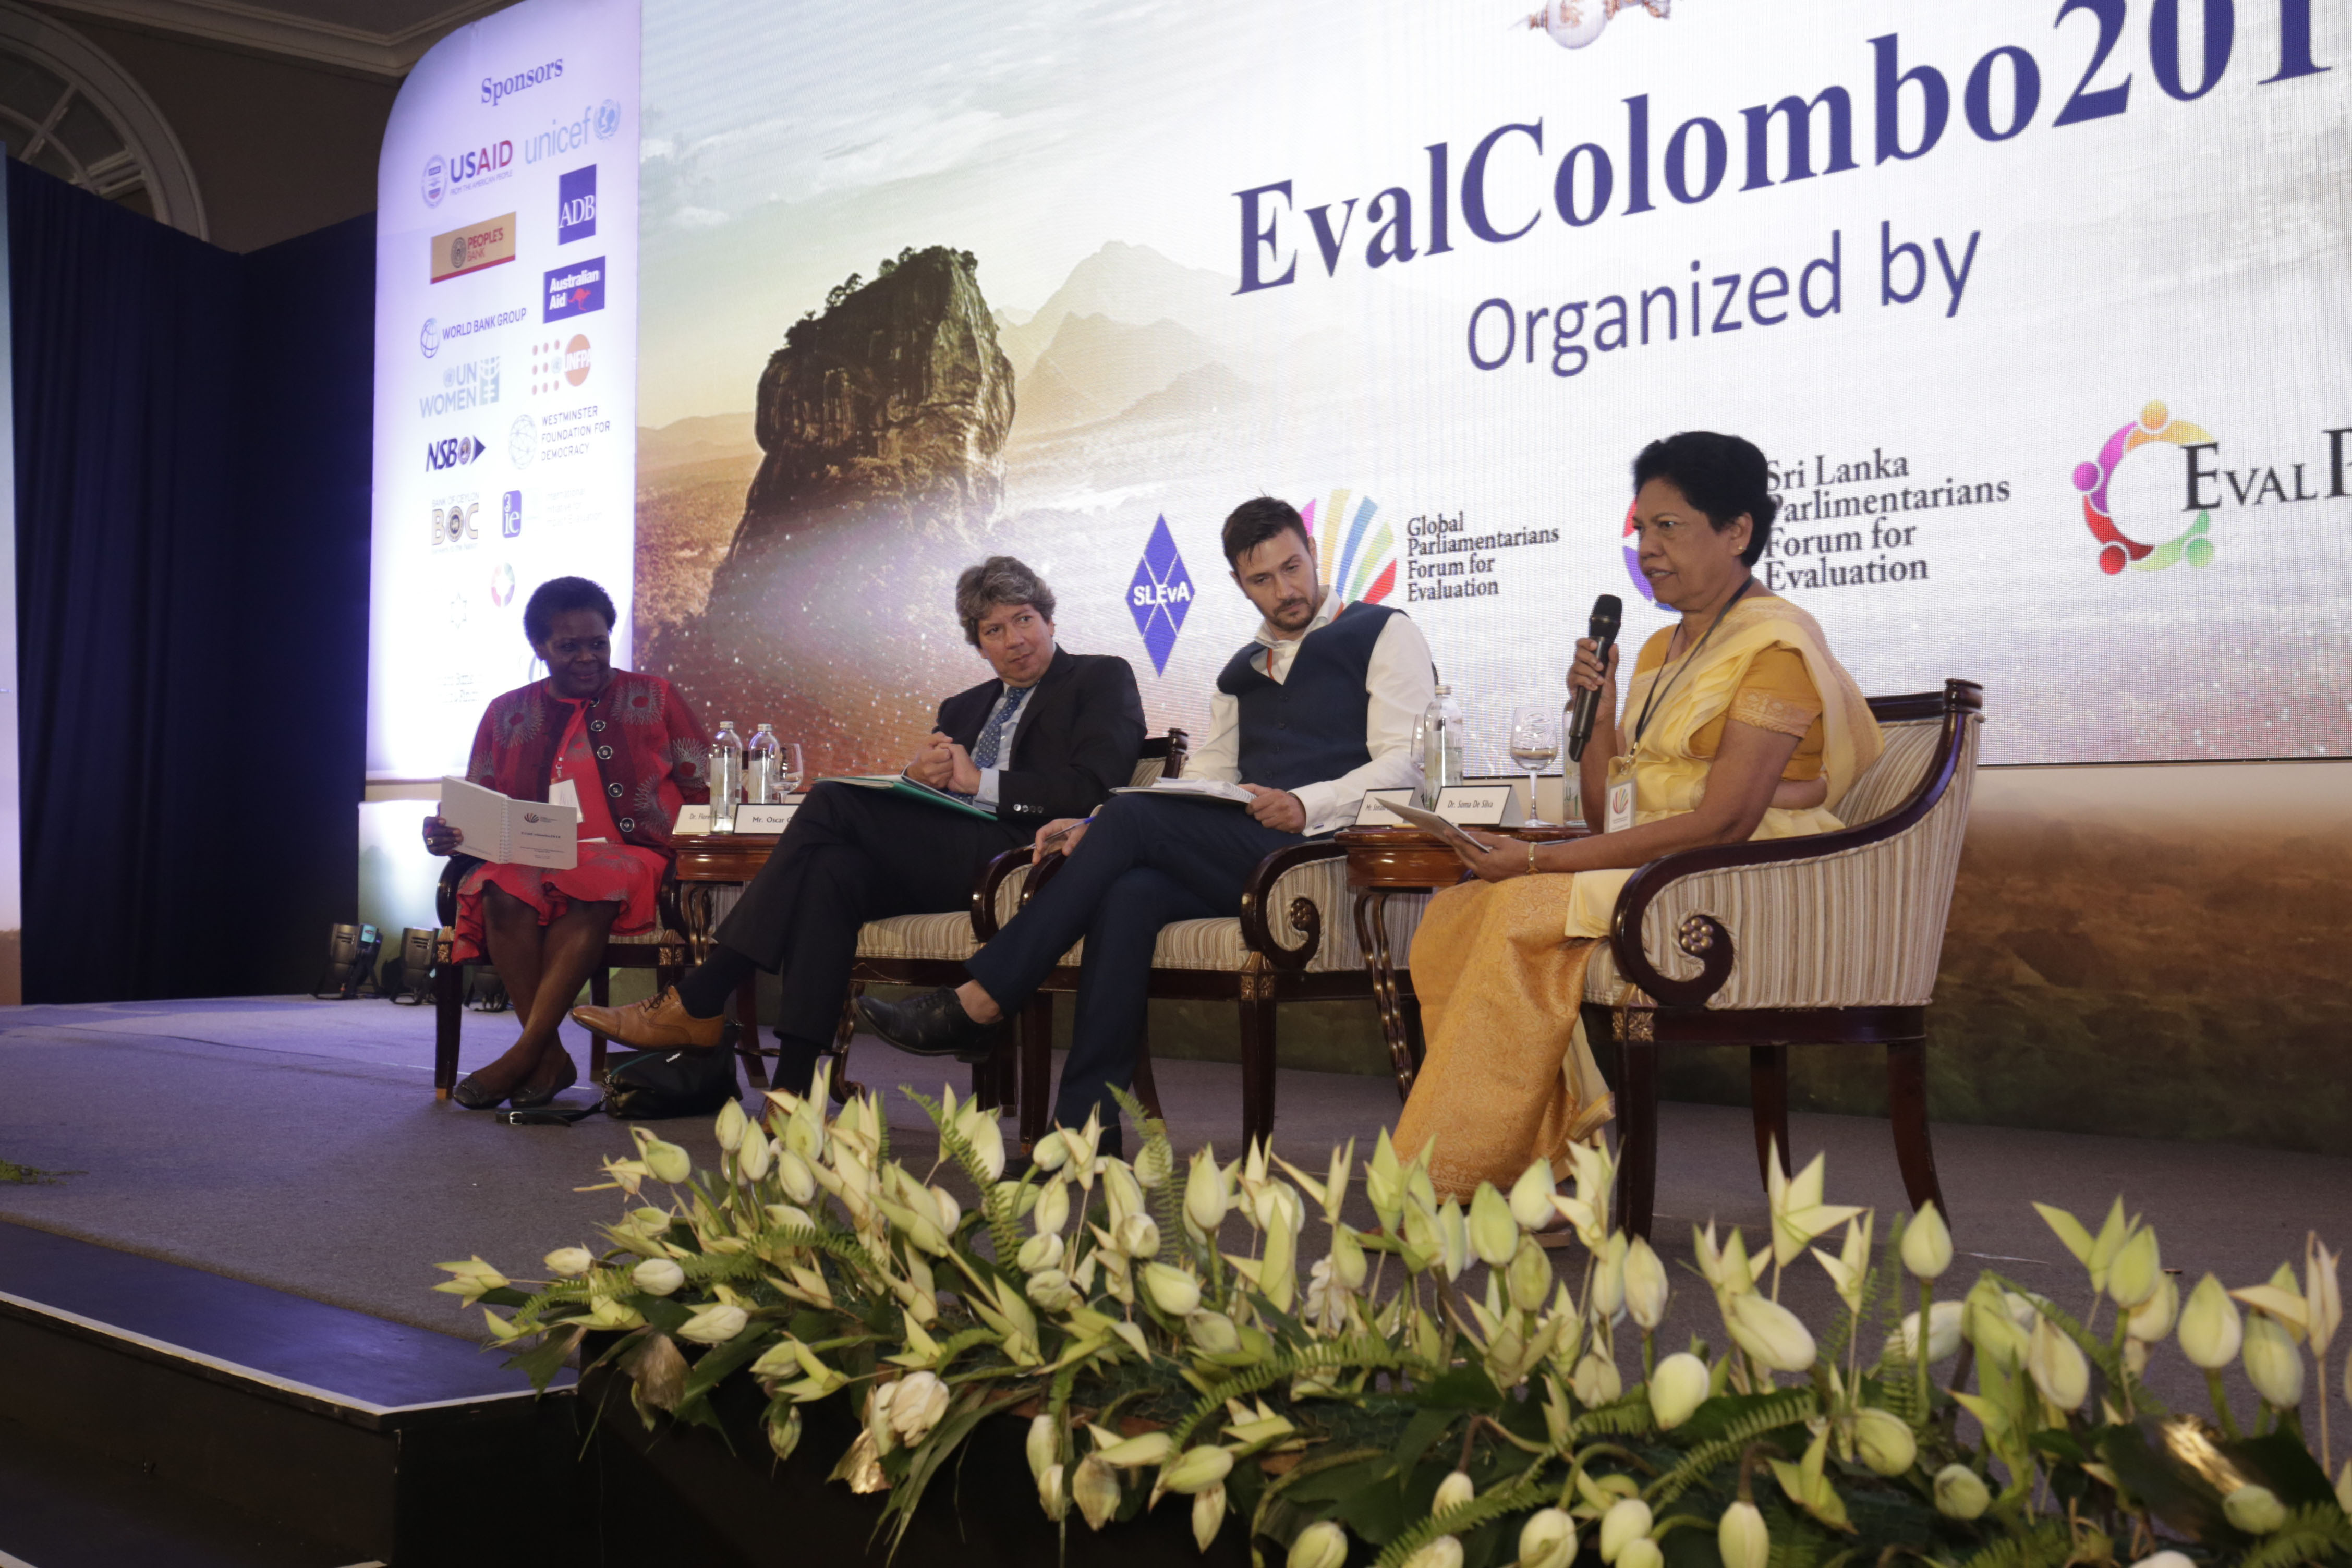 Global Parliaments and the Colombo Declaration